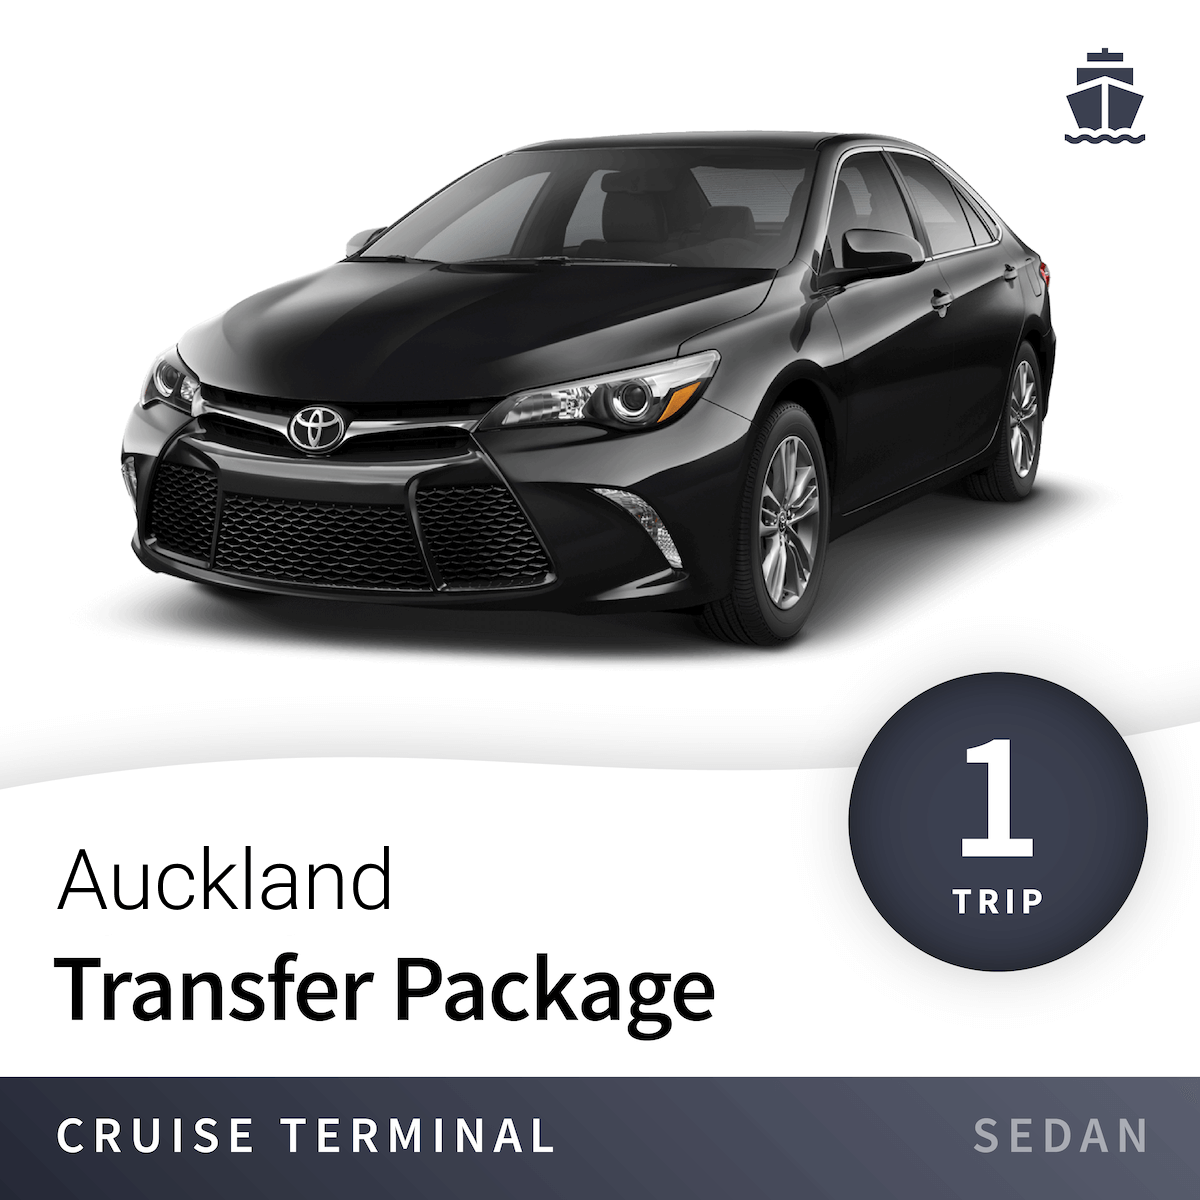 Auckland Cruise Terminal Transfer Package – Sedan (1 Trip) 3